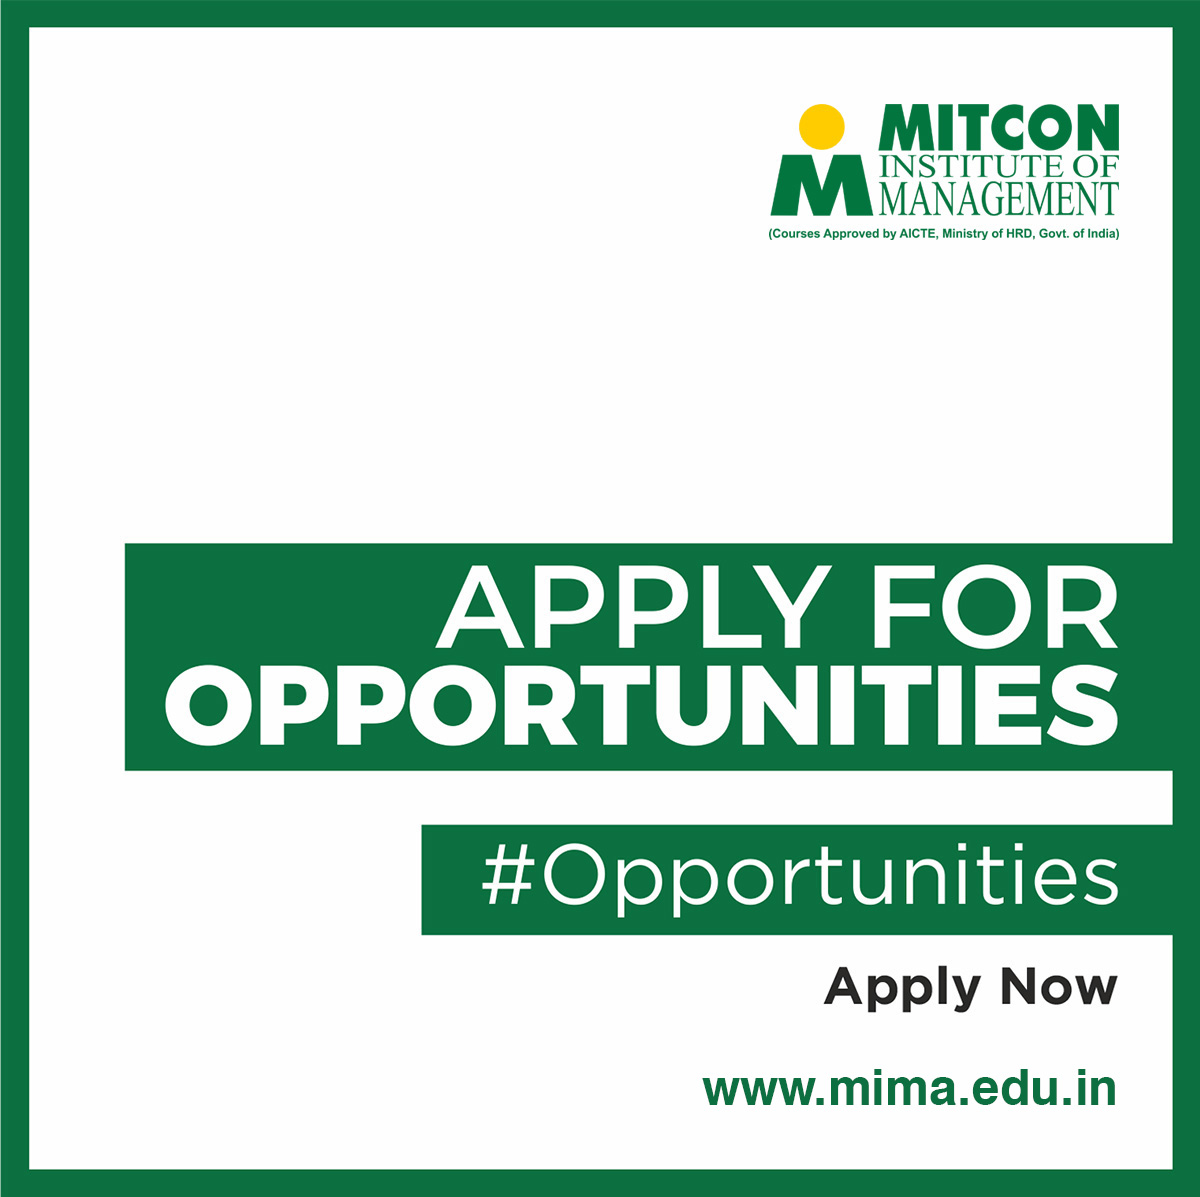 Apply For Opportunity – MITCON Institute of management in Pune | free Classified | Free Advertising | free classified ads